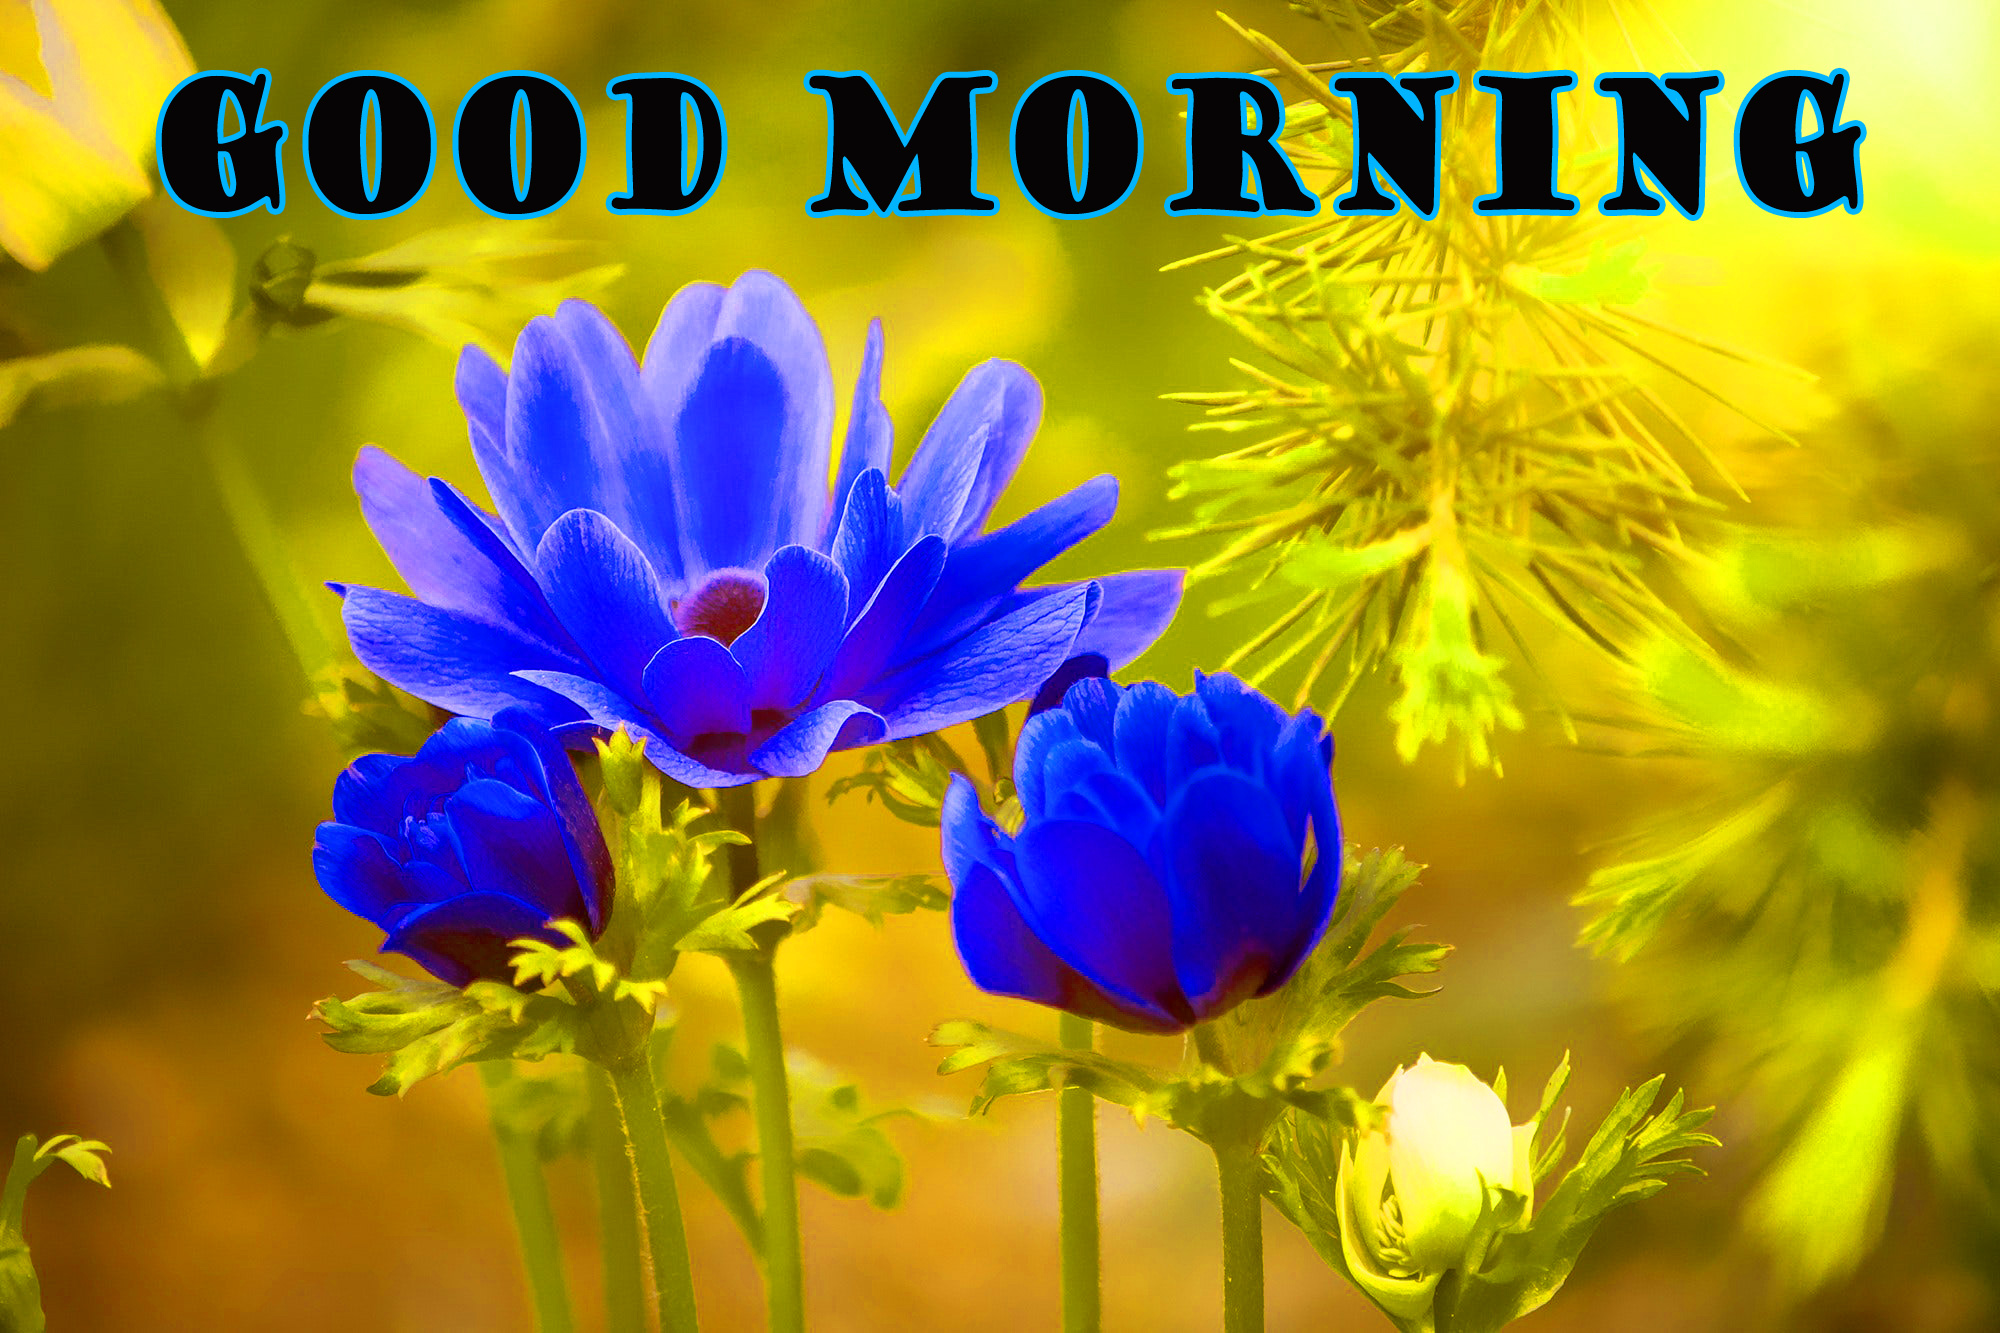 Good morning all friends hd image download 2019